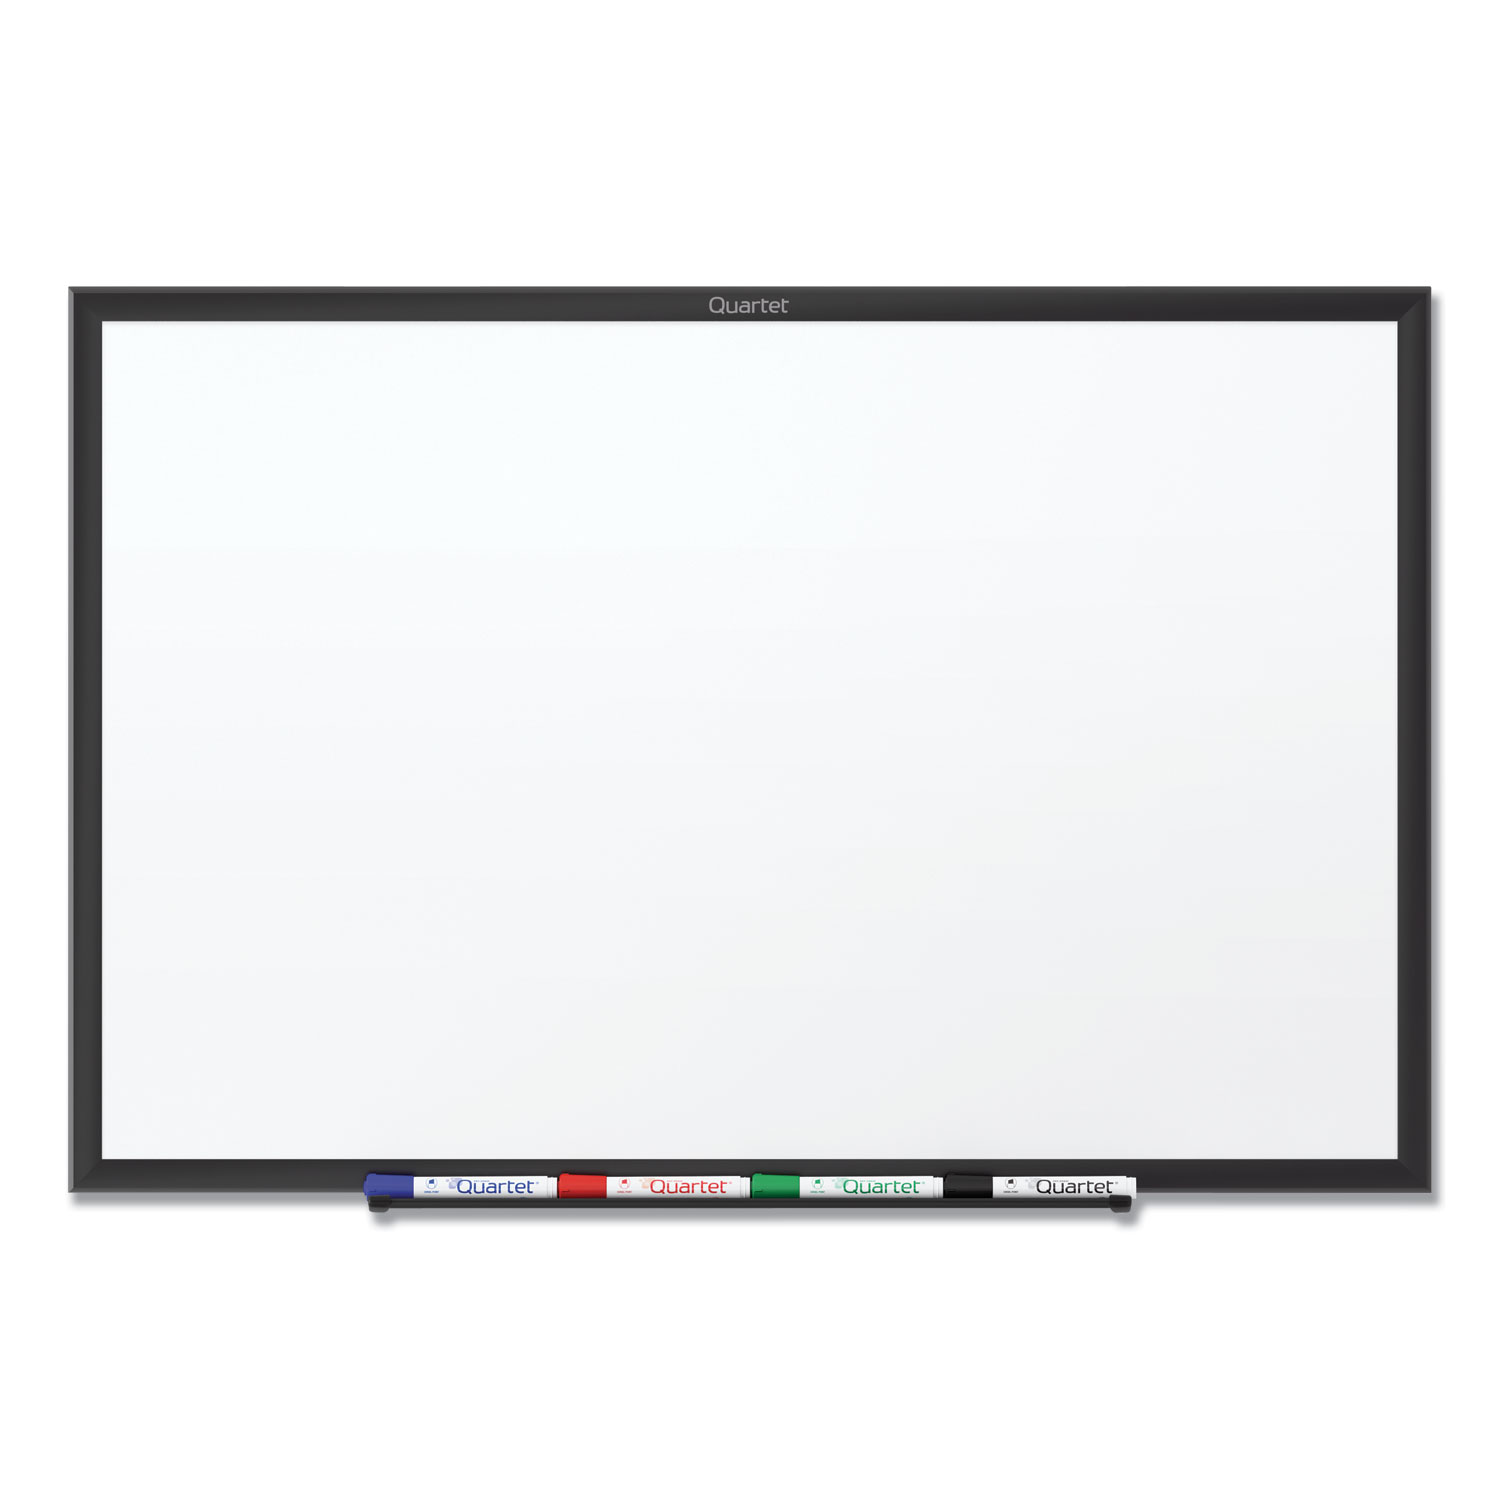 Picture of Classic Series Total Erase Dry Erase Board, 36 x 24, White Surface, Black Frame